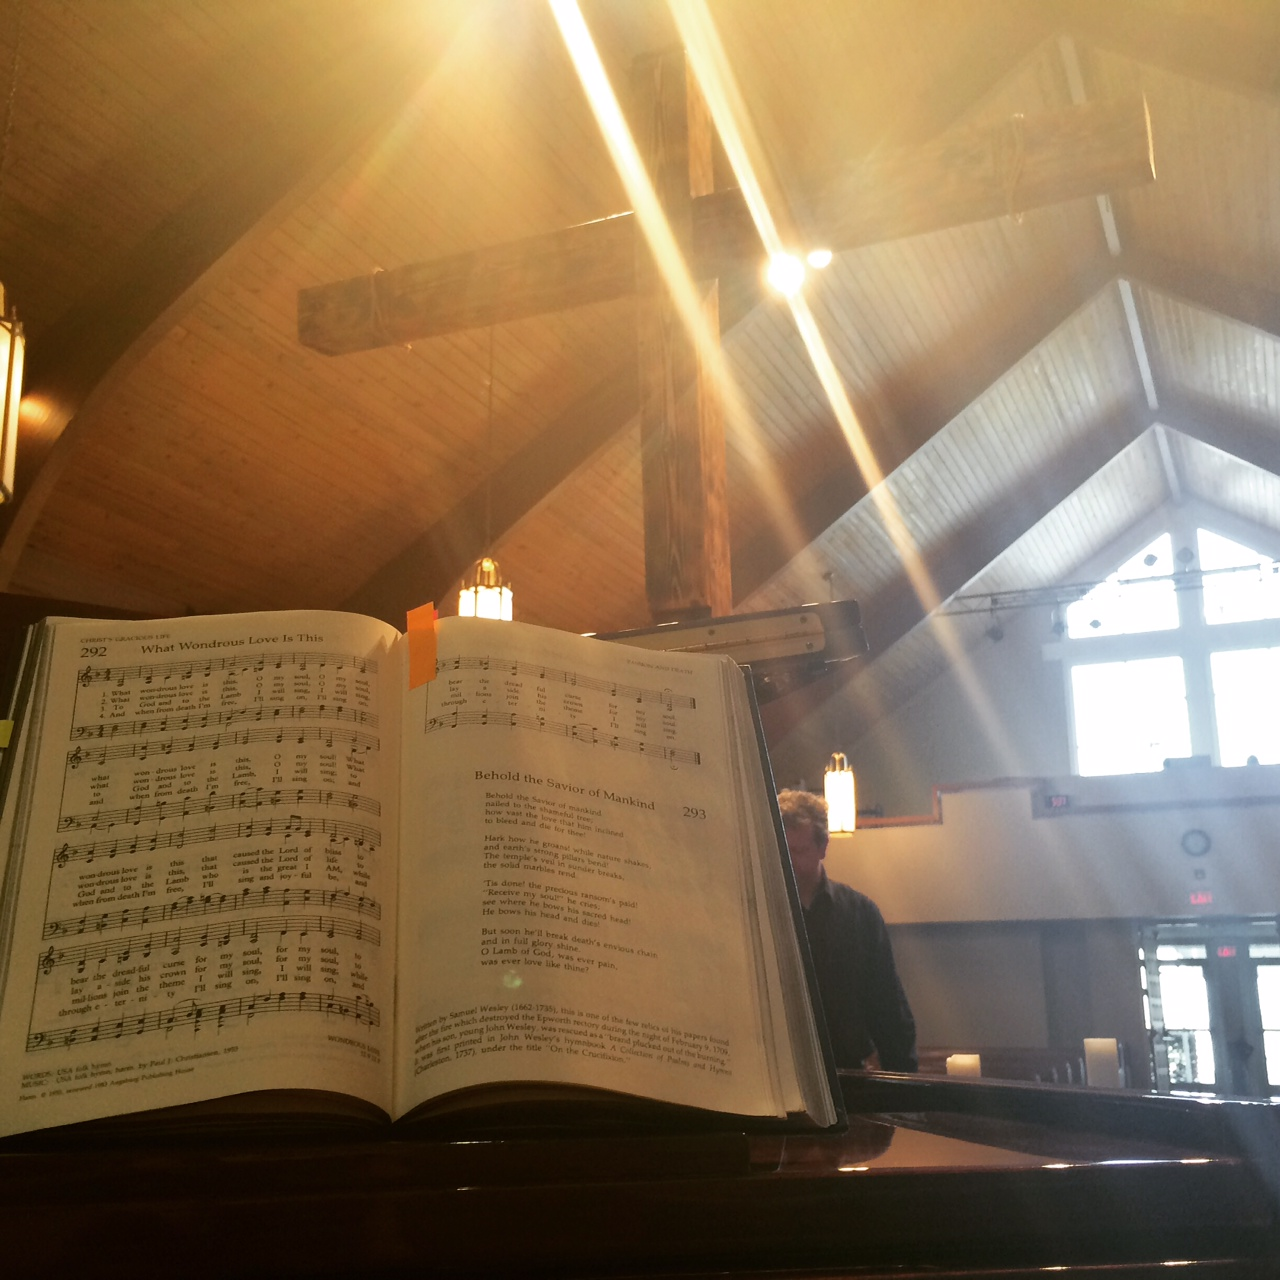 Our new music minister at OUMC walked us through the steps for Good Friday in rehearsal the other evening.